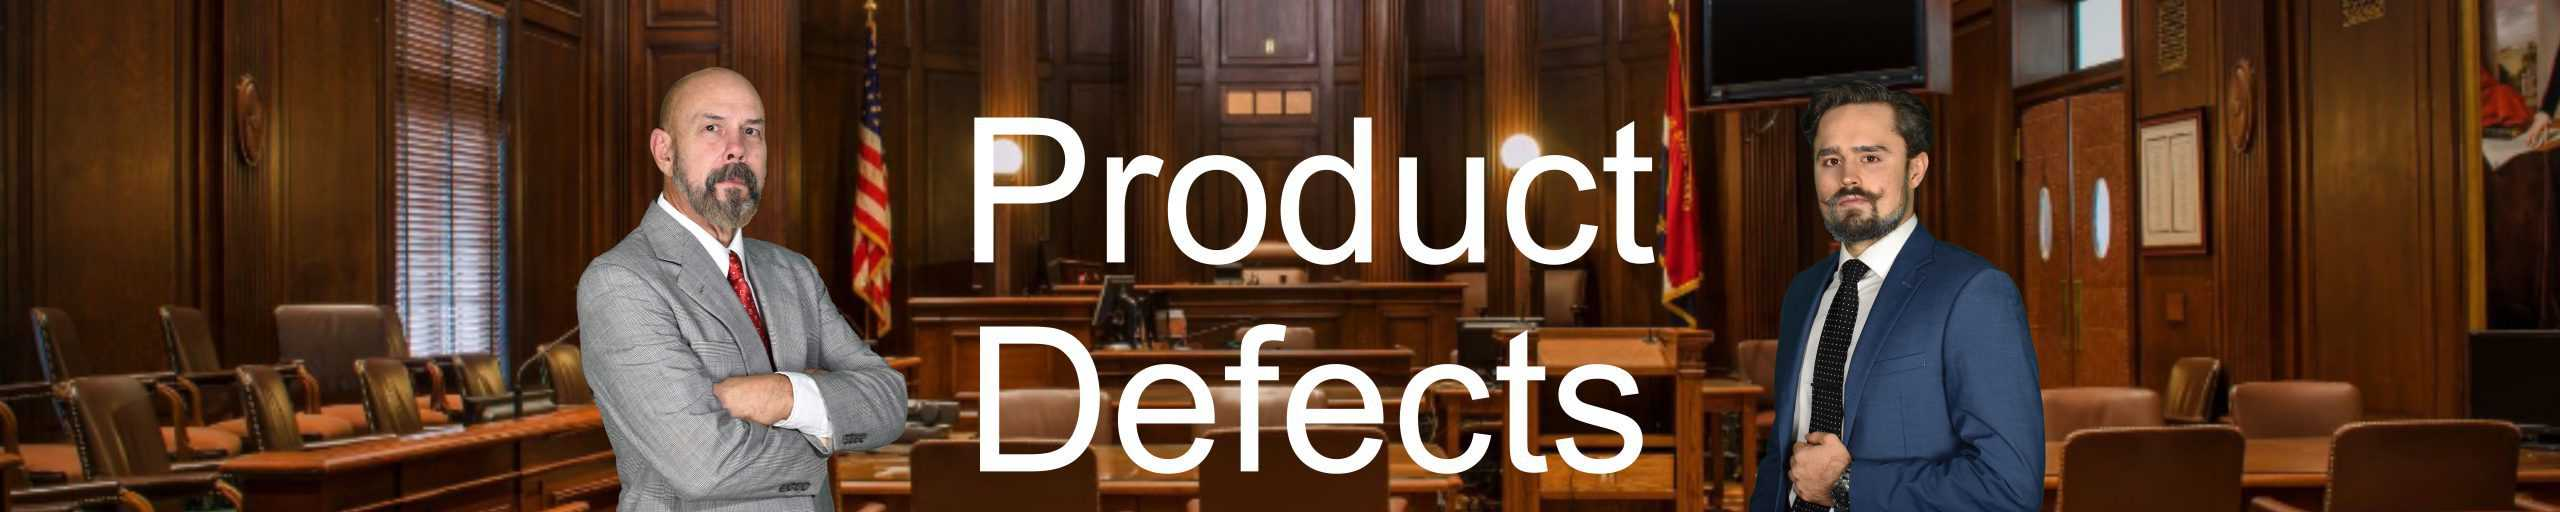 Product-Defects-Defective-Personal-Injury-Hurt-Lawyer-Attorney